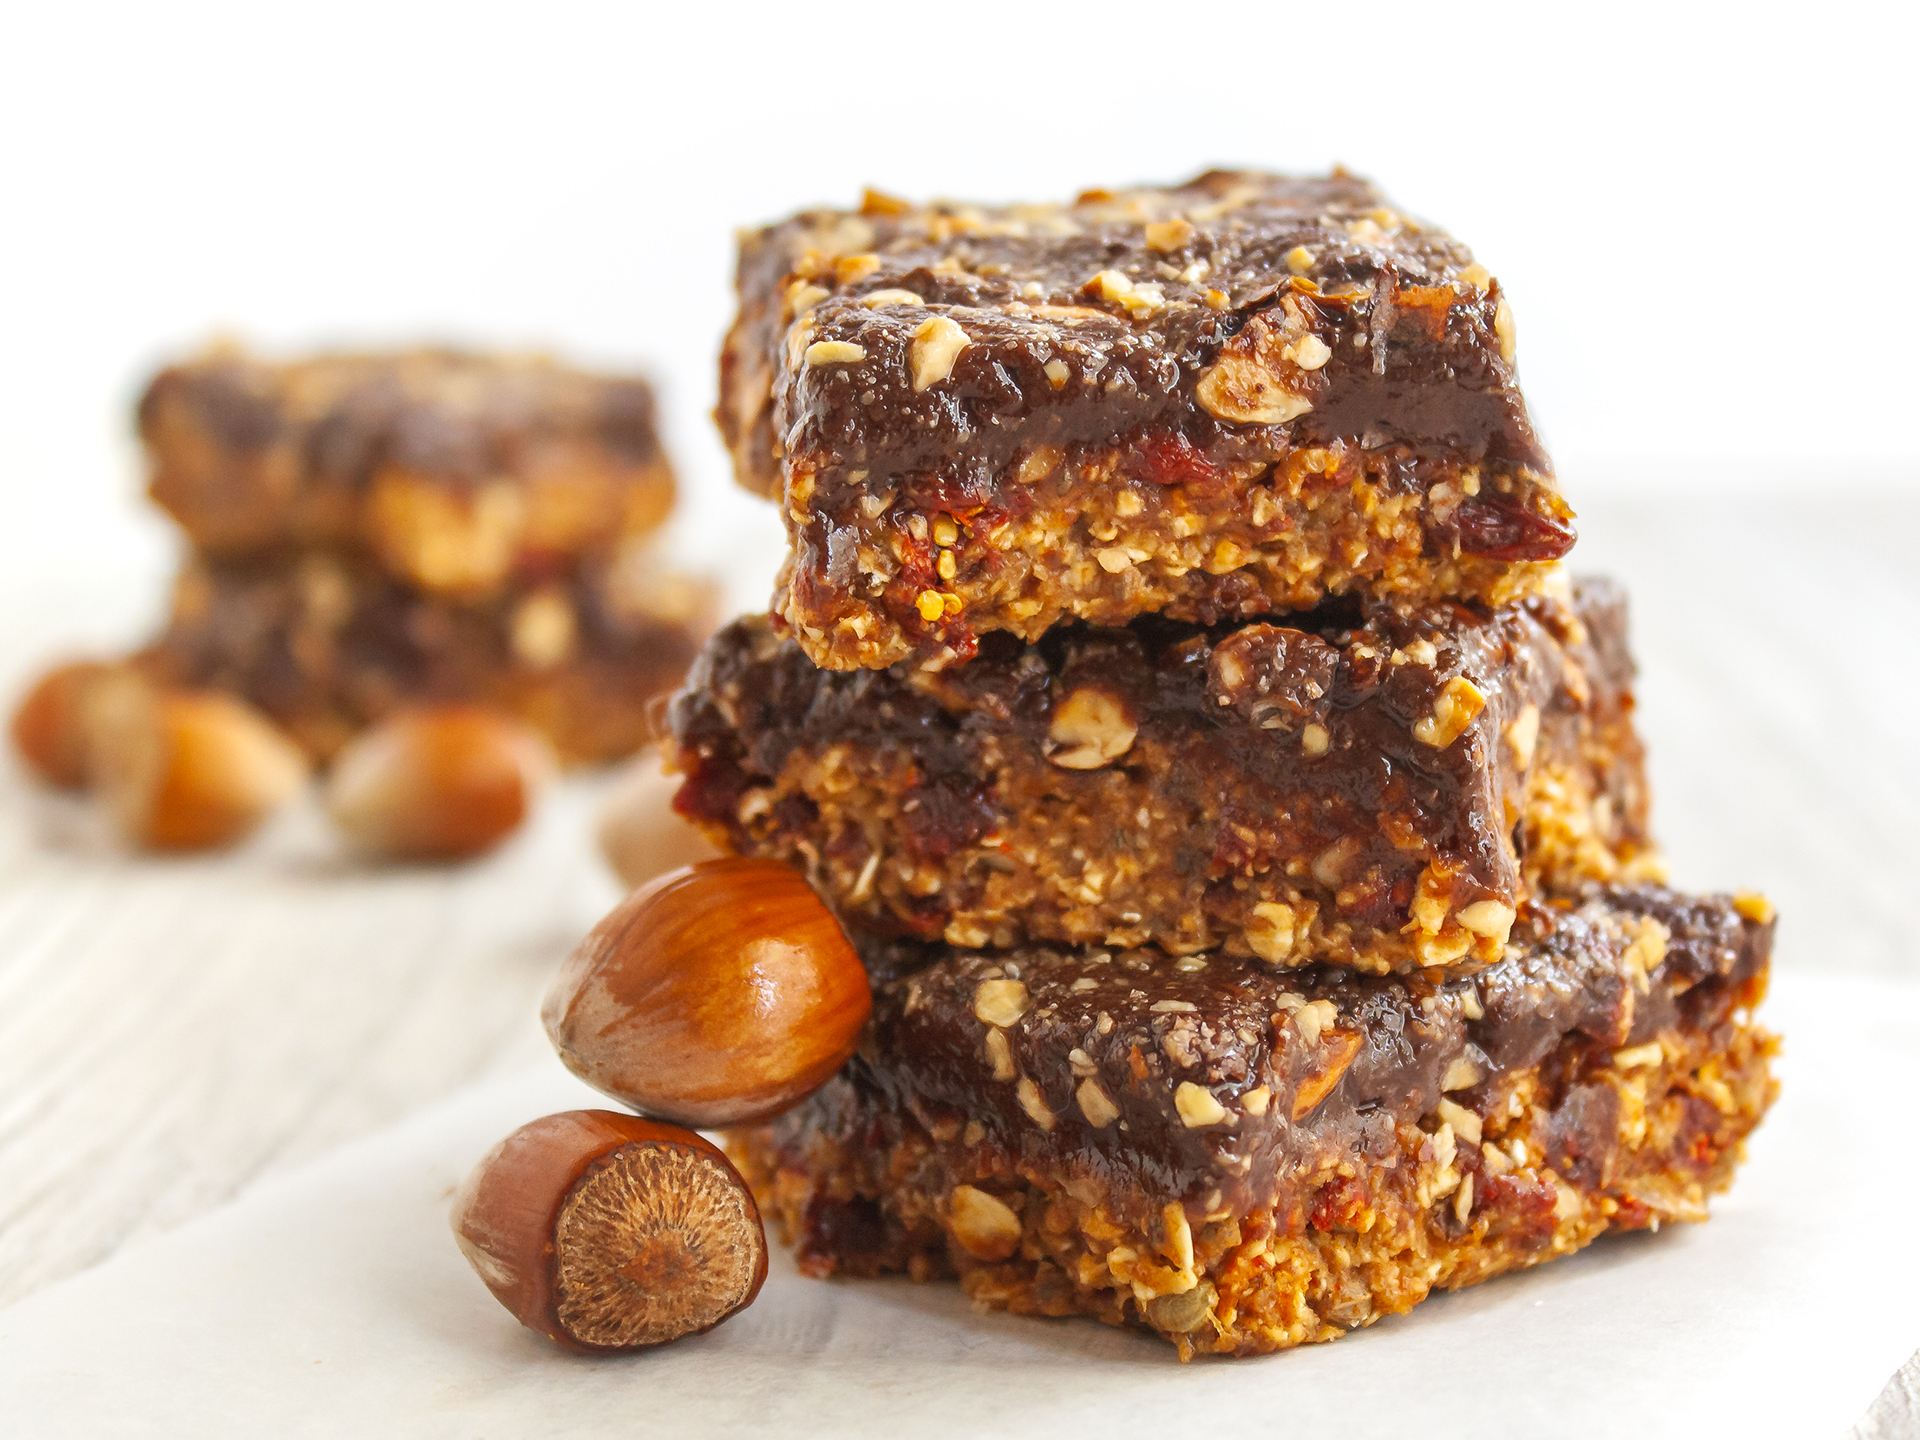 Vegan High Protein High Fiber Date Energy Bars